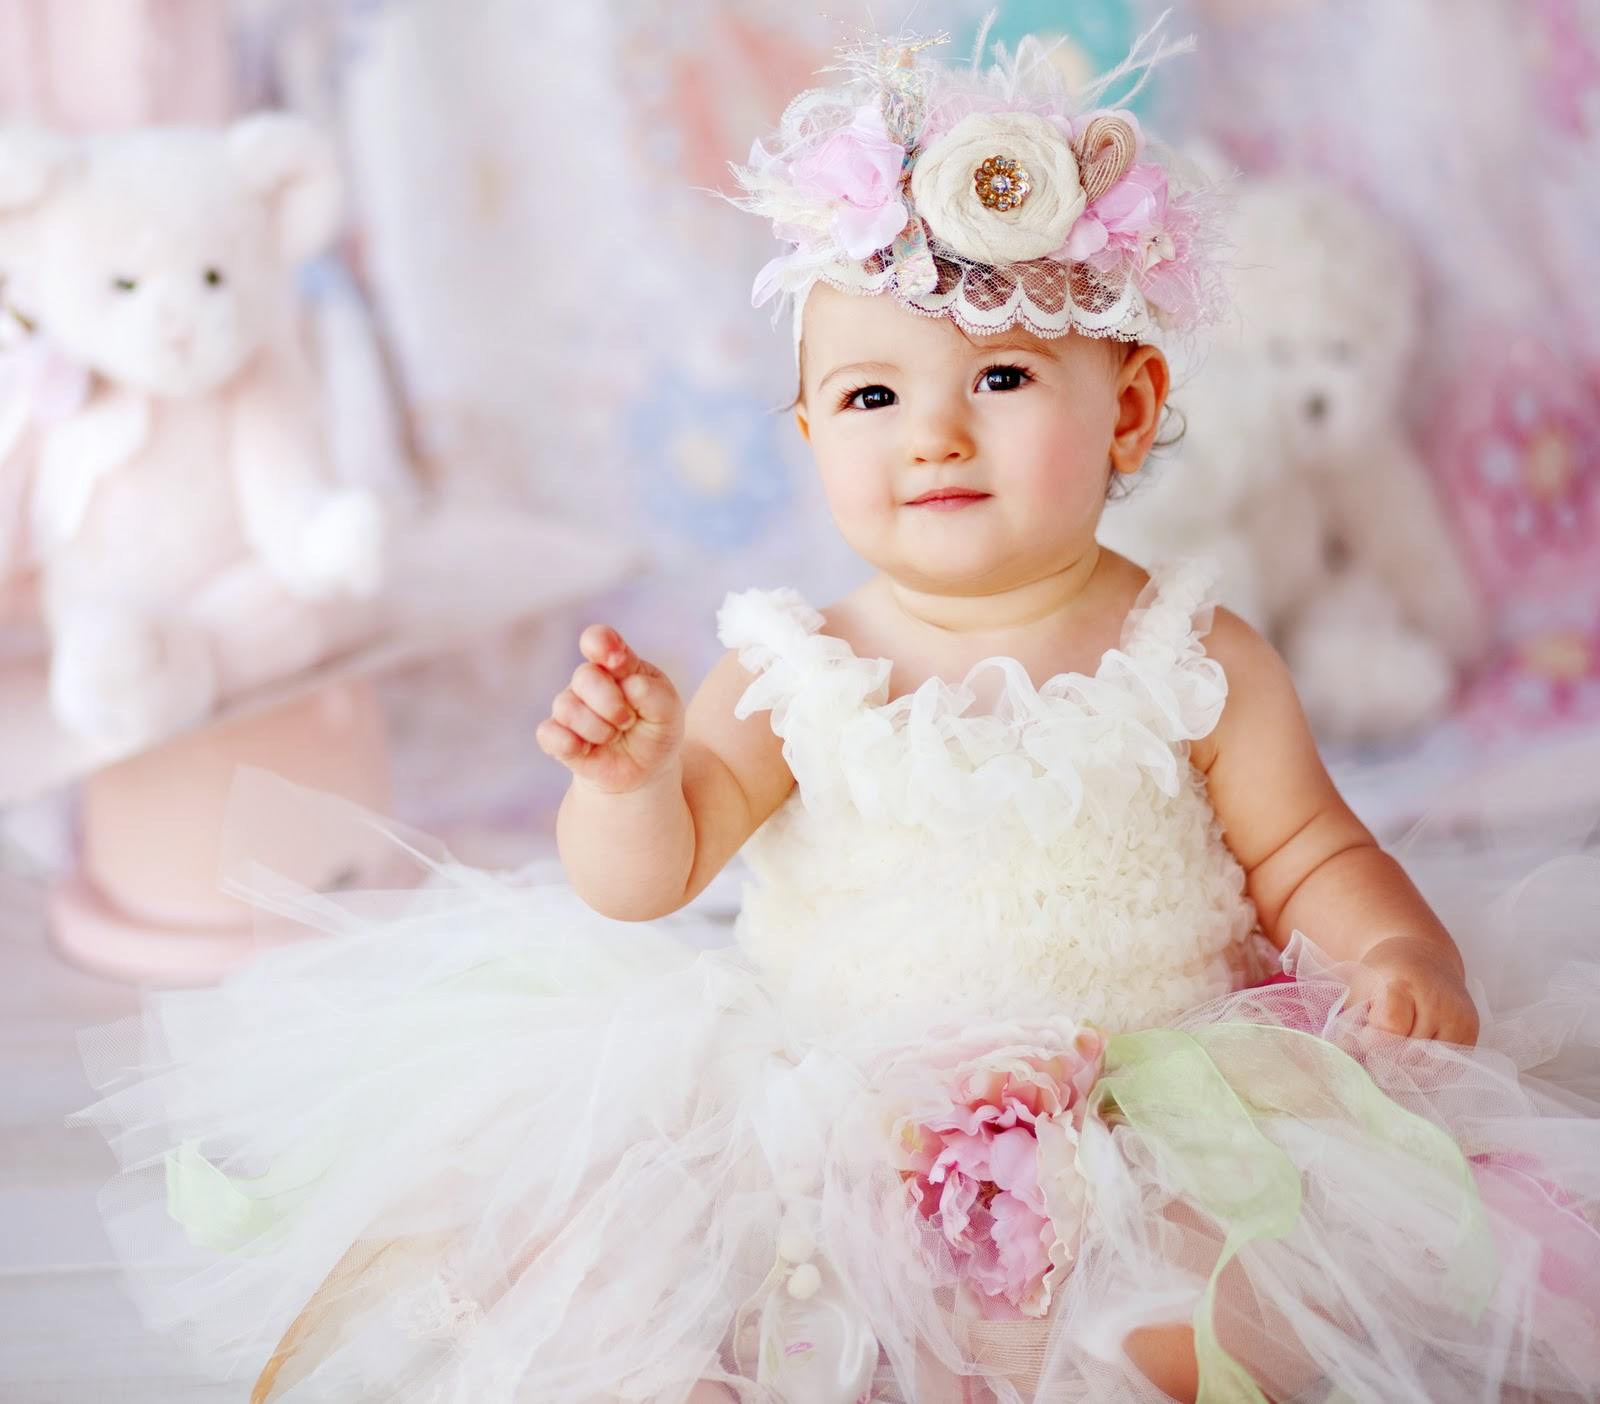 cute and lovely babies picutres to download free | cute babies pics